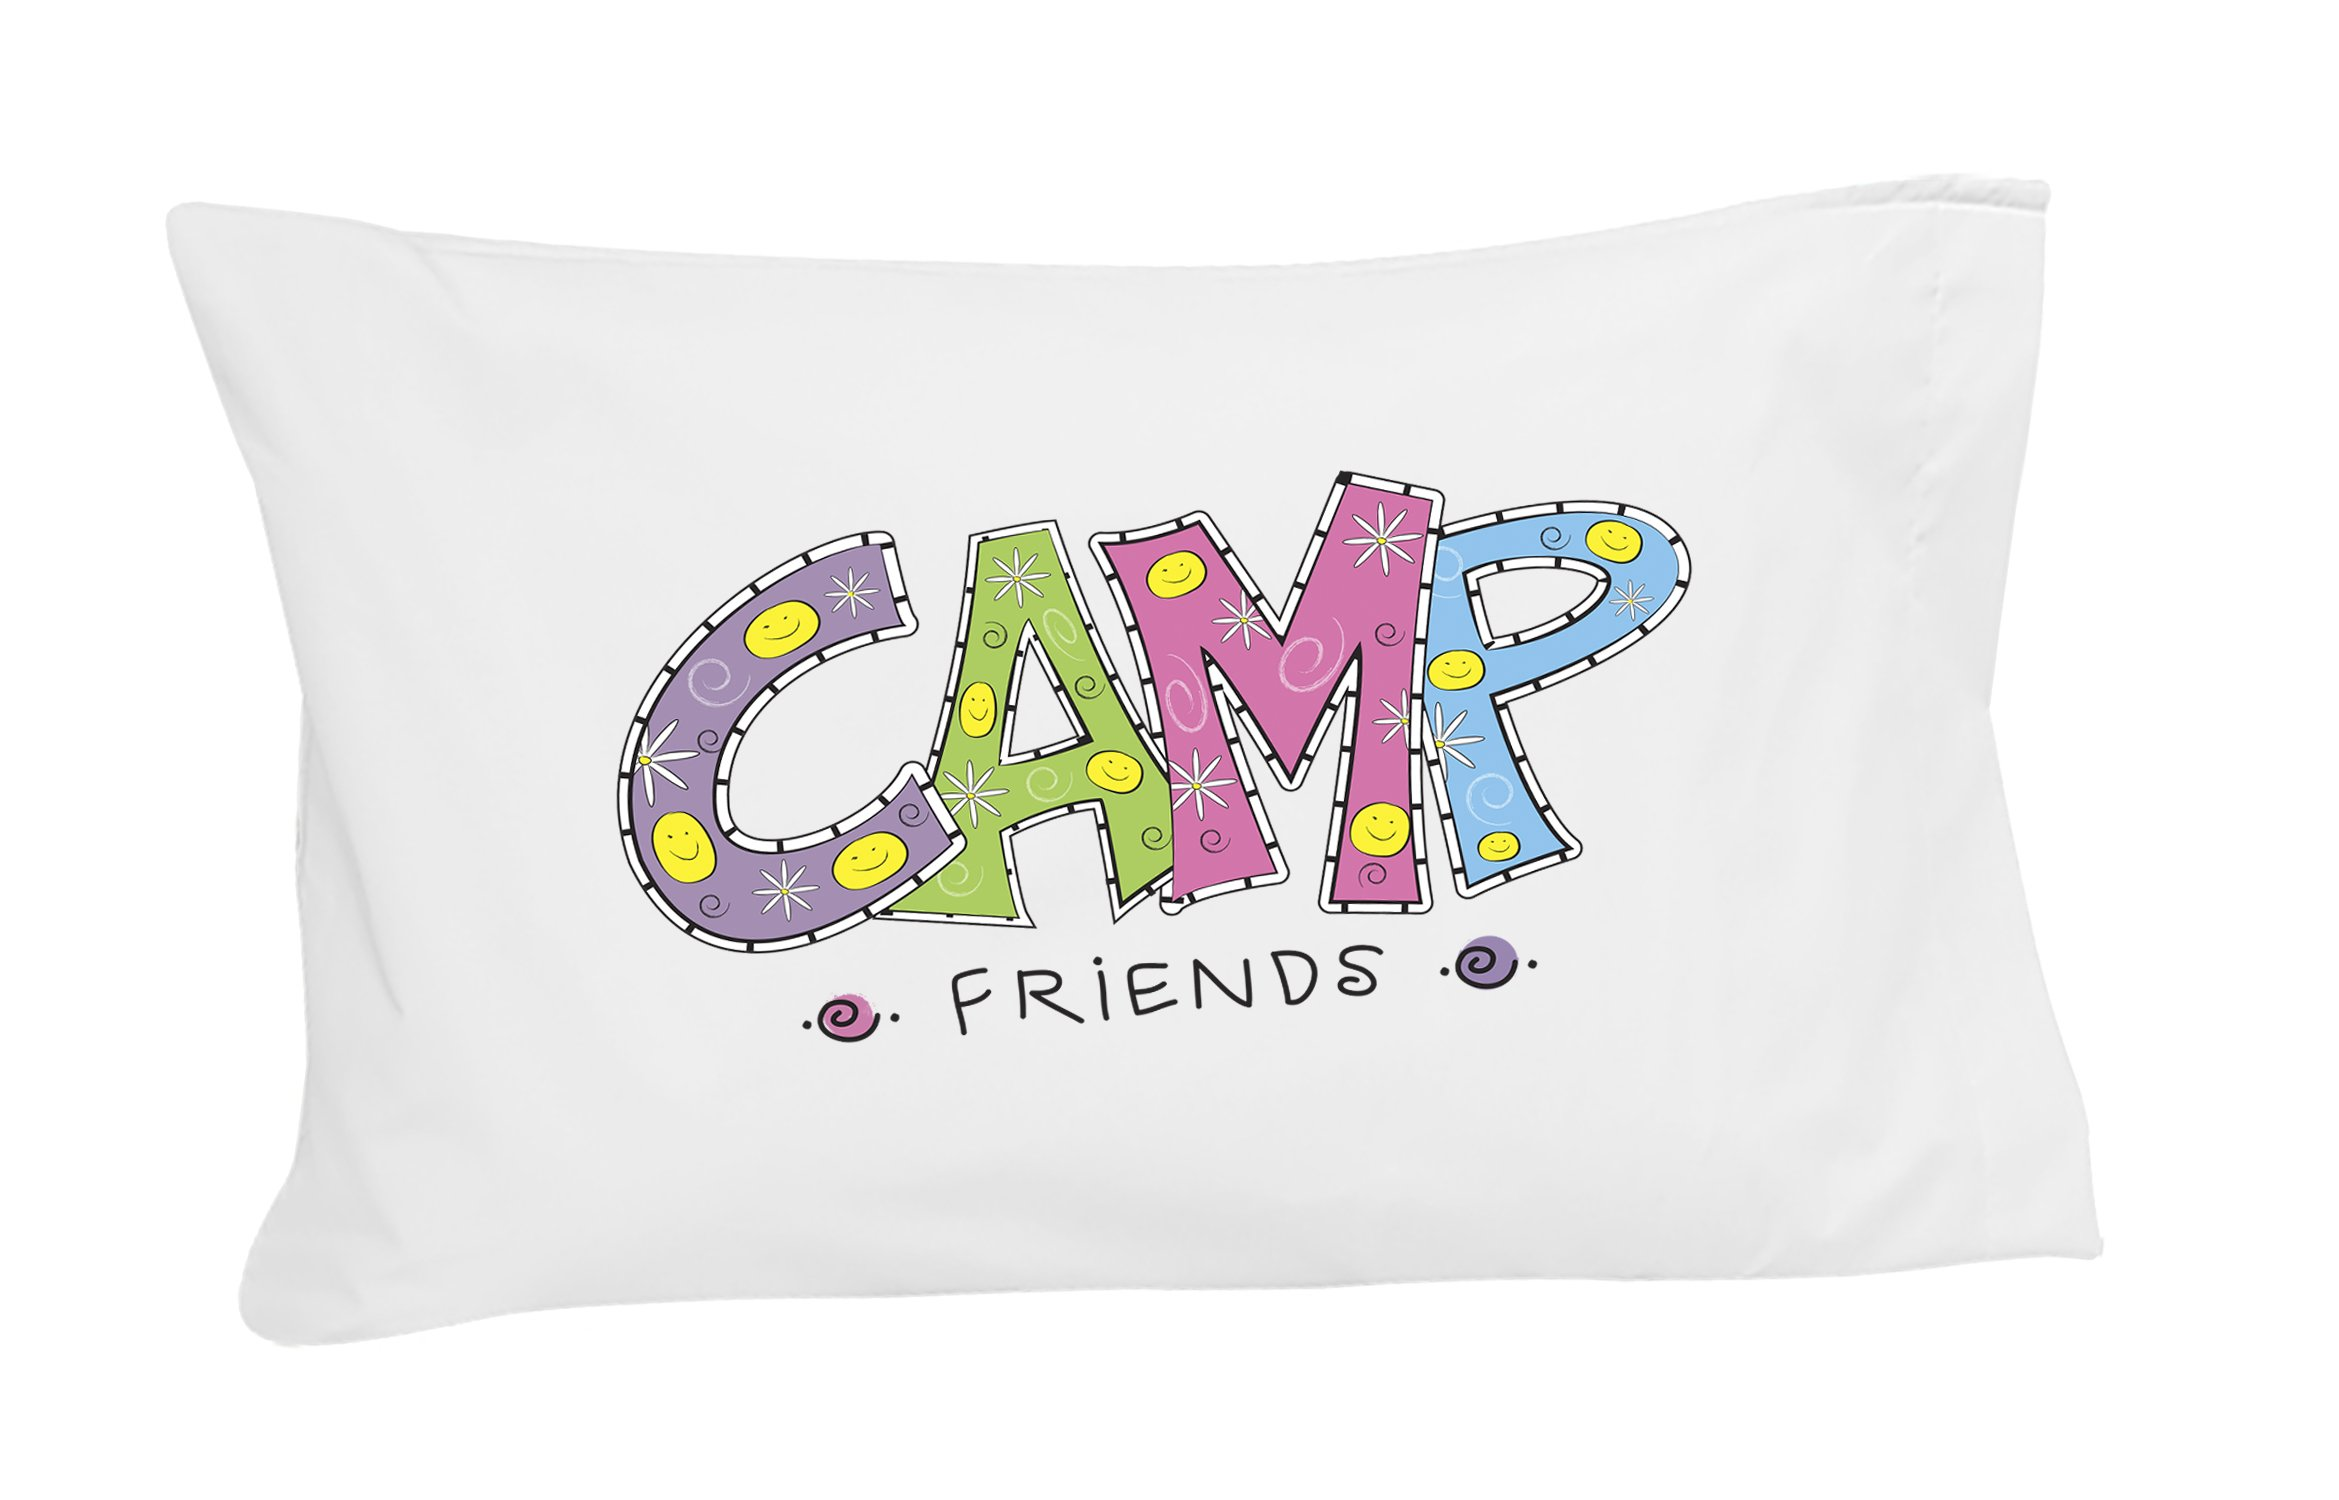 Camp Friends Autograph Pillowcase by Autograph Pillows